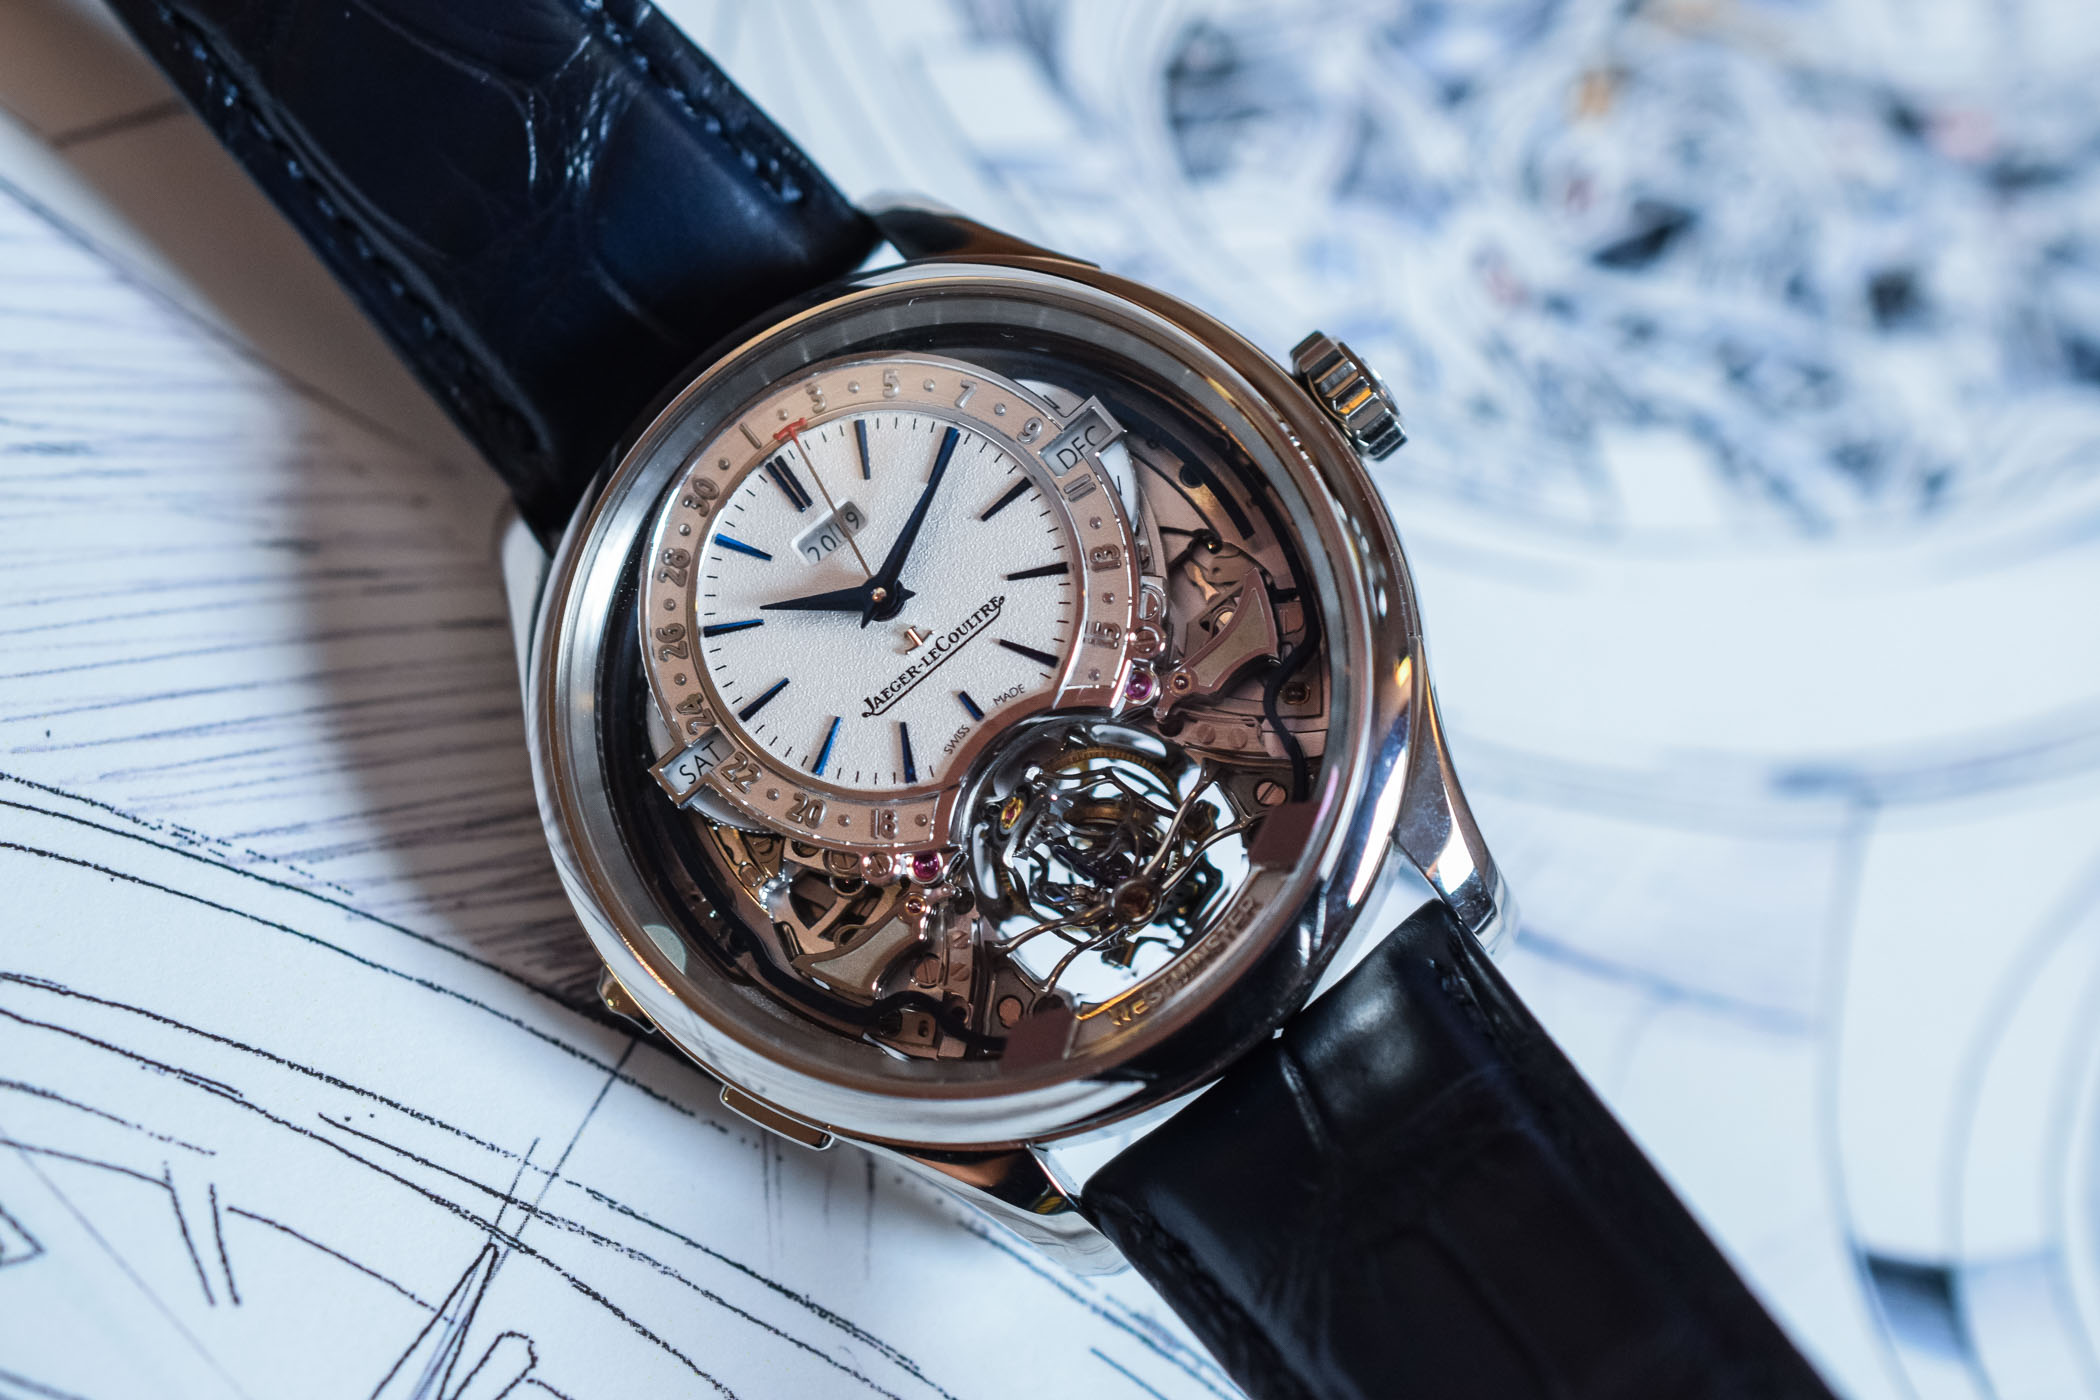 Jaeger LeCoultre SIHH 2019 - 5